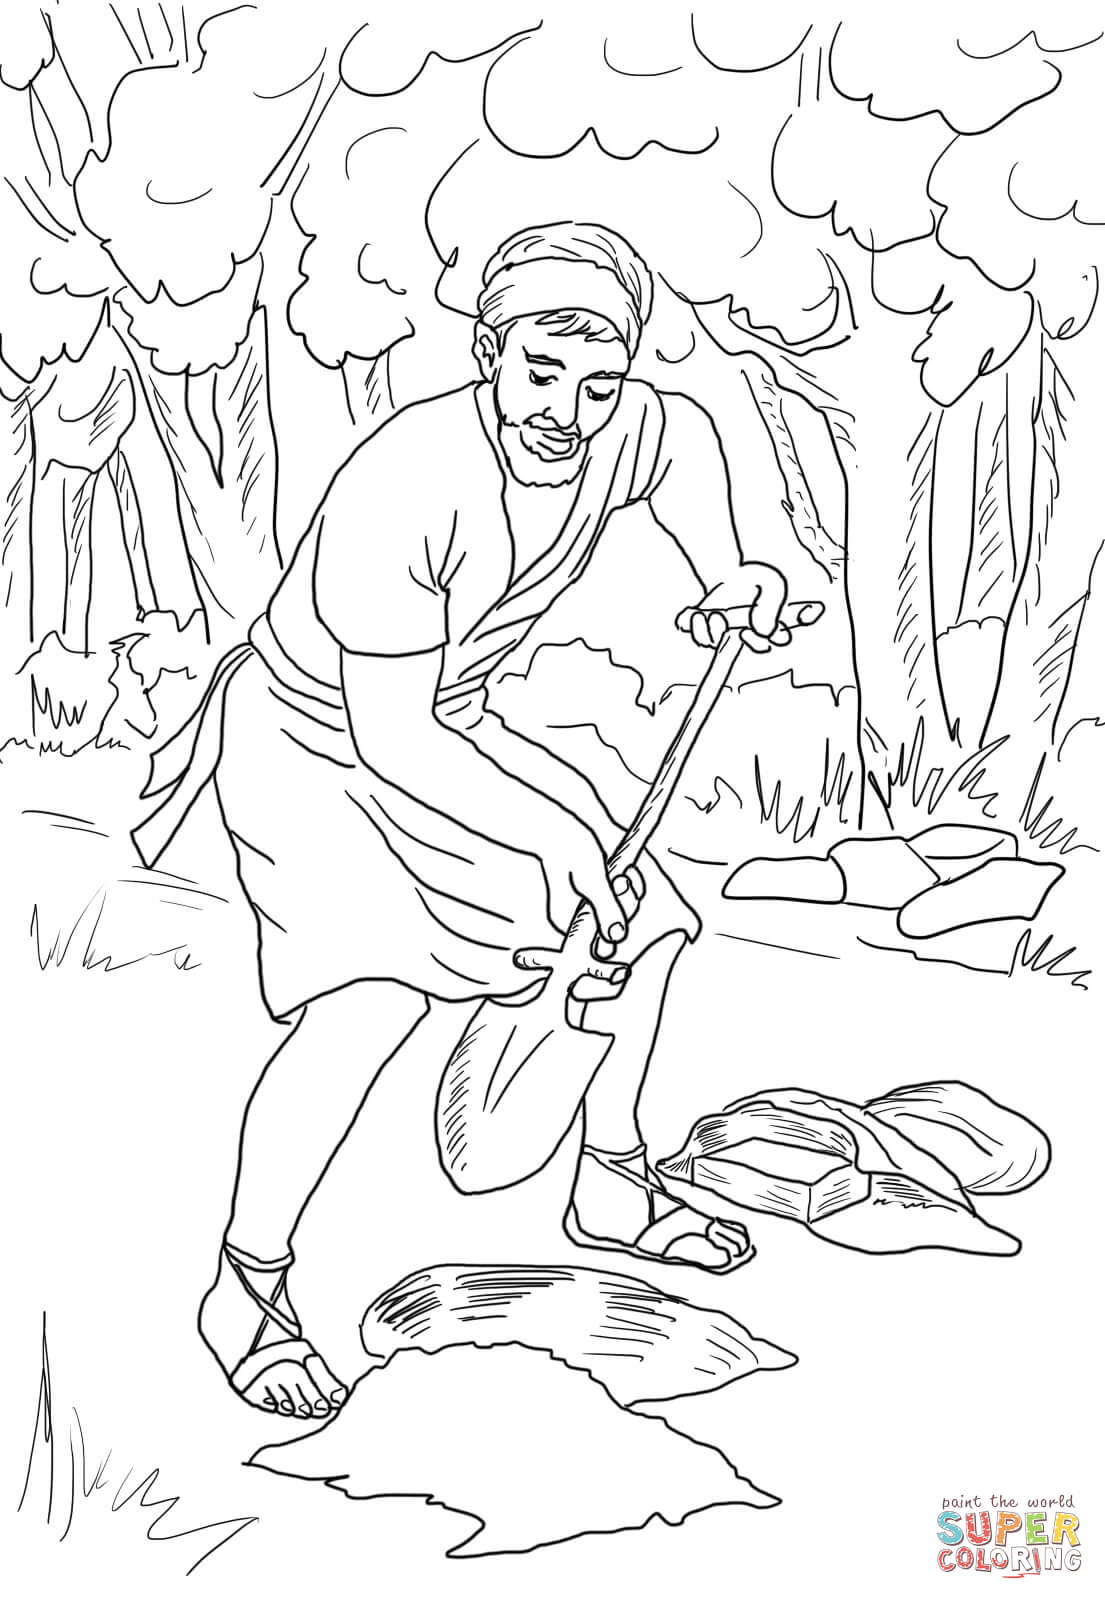 Parable of the Talents coloring page | Free Printable Coloring Pages